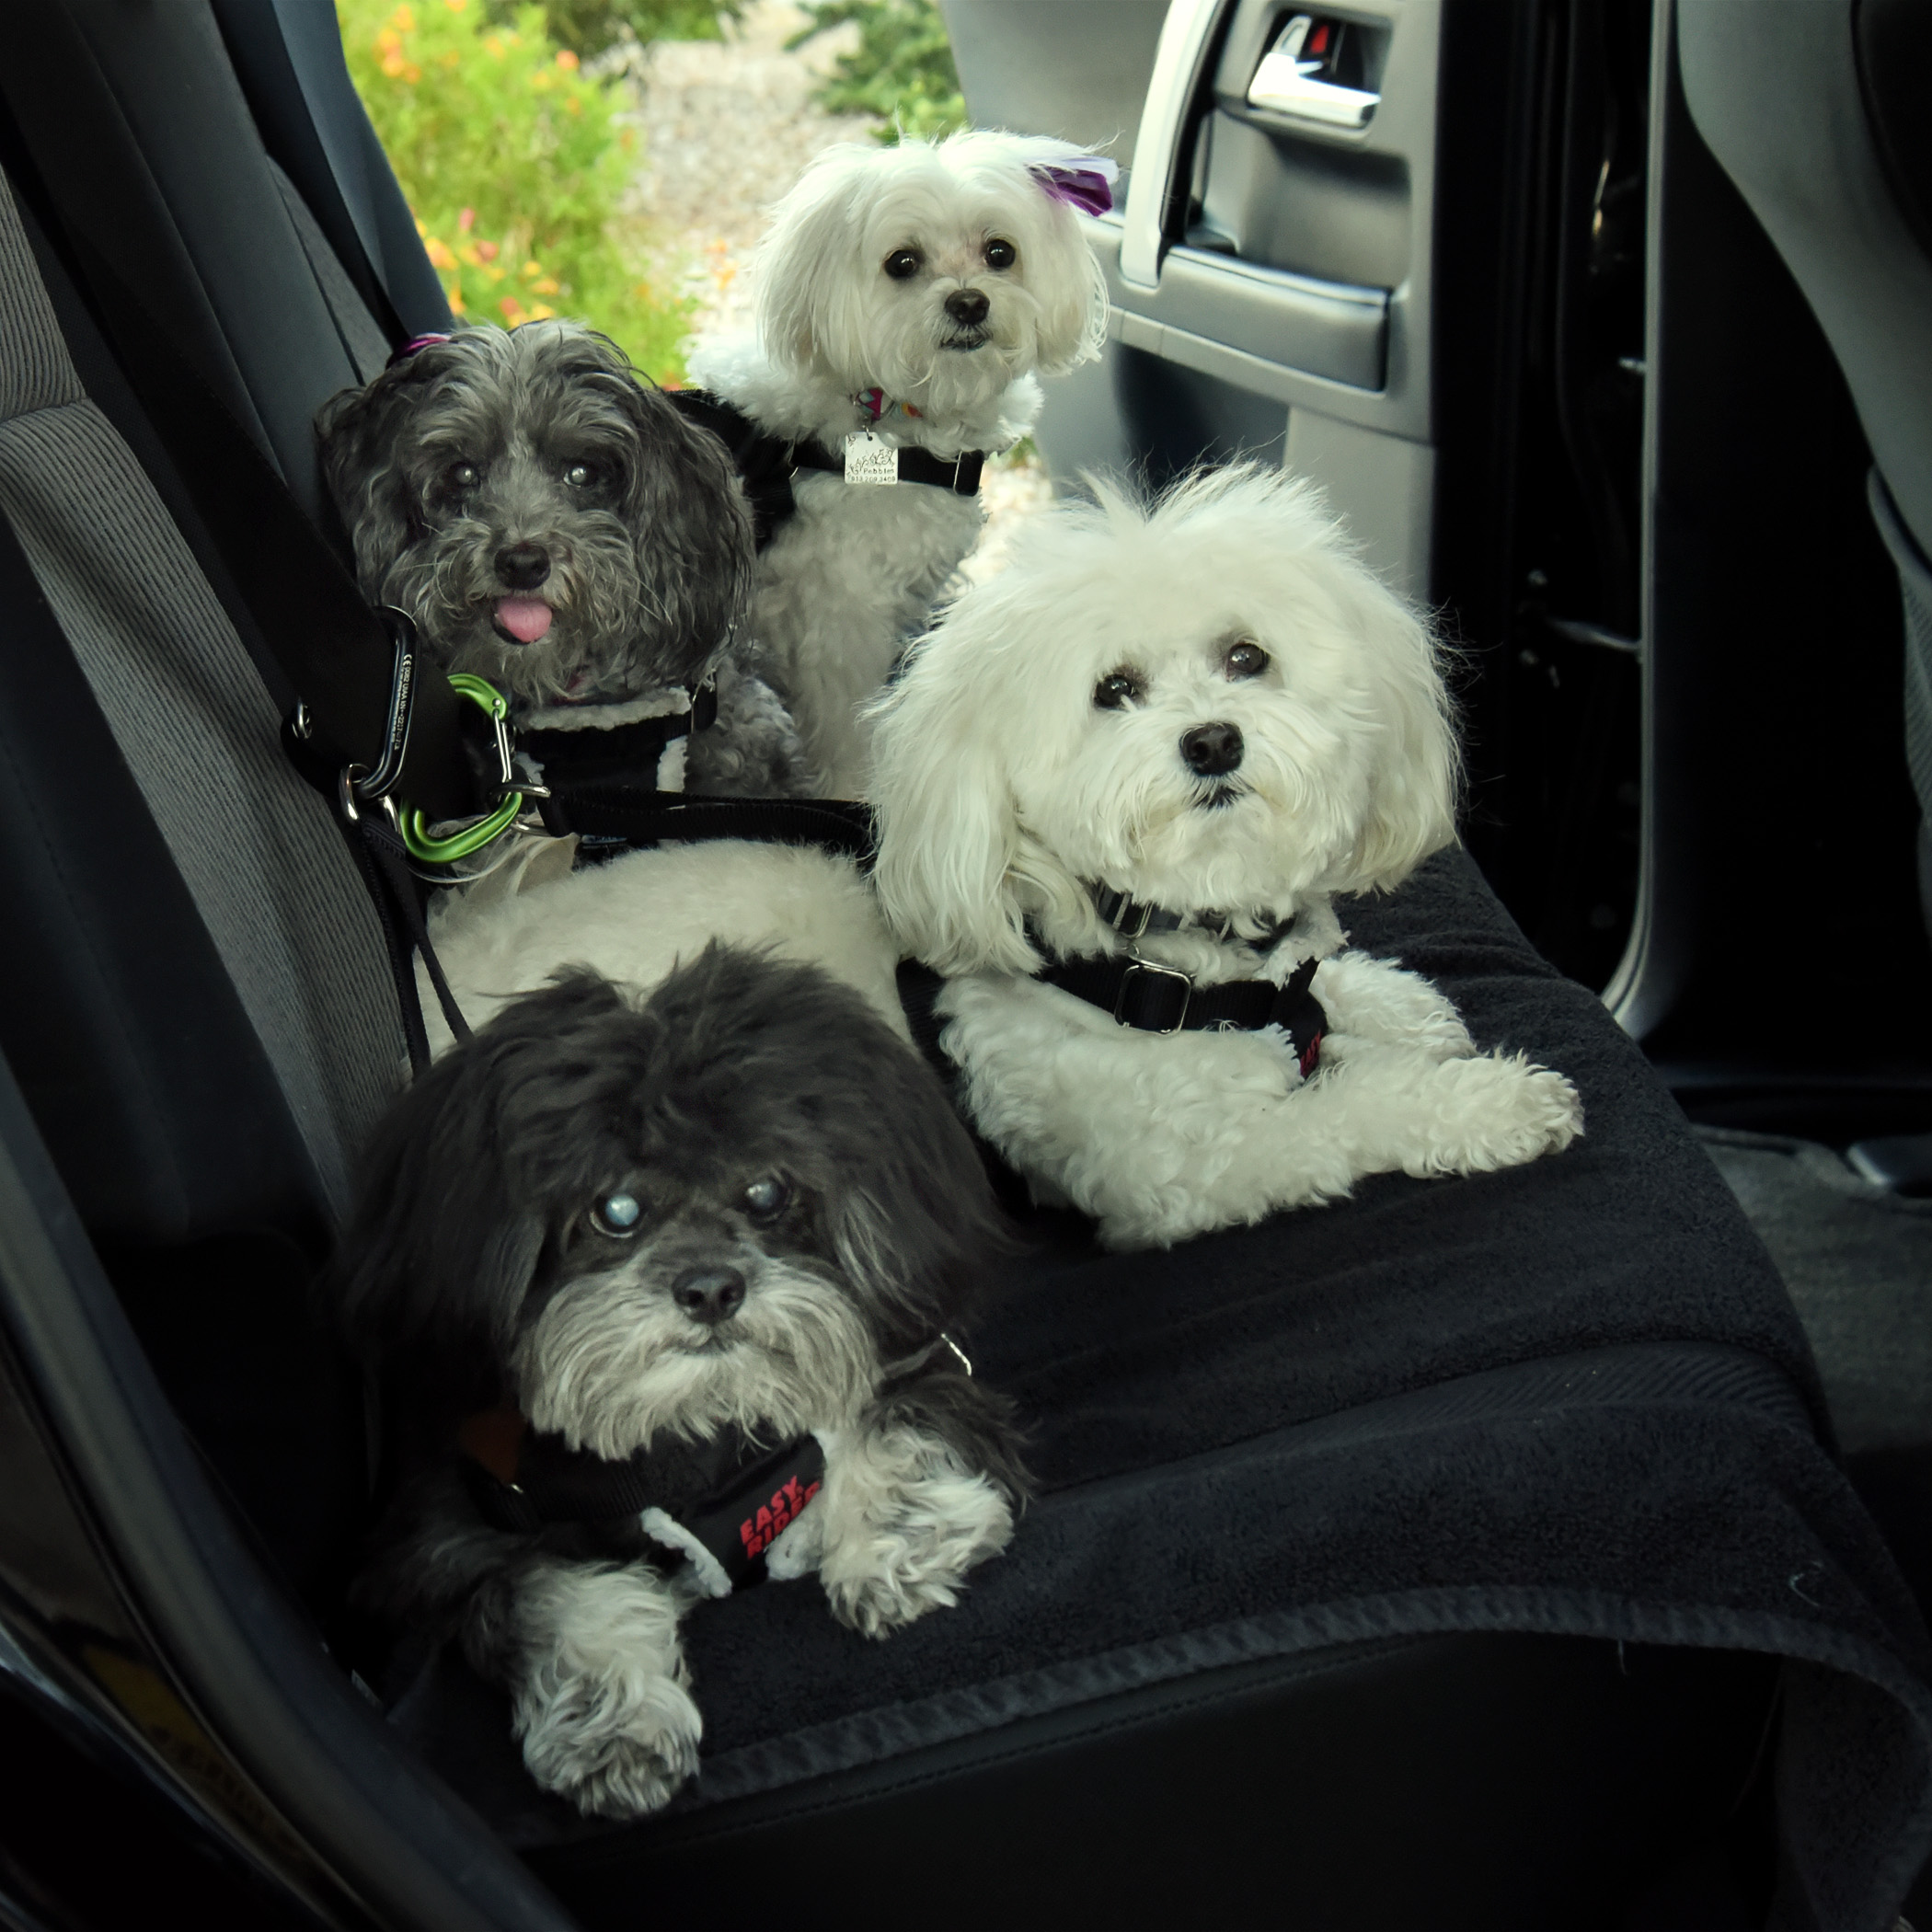 On the road, again, Mom?!? You & Dad can drive. We're beat…wake us when we get there!